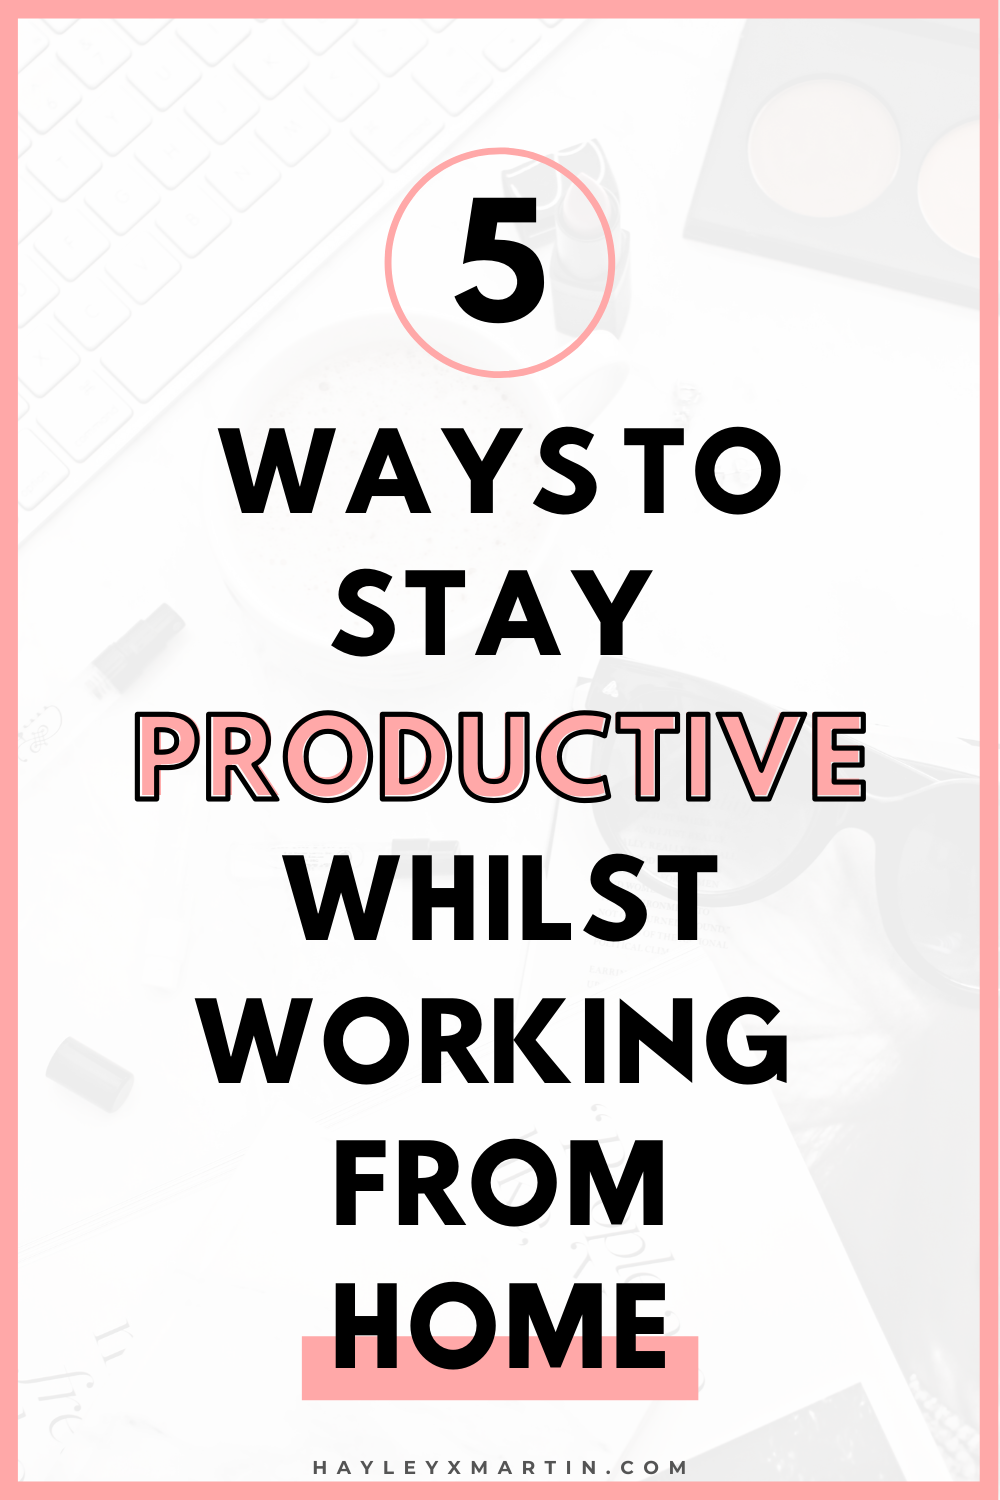 5 WAYS TO STAY PRODUCTIVE WHILST WORKING FROM HOME - HAYLEYXMARTIN